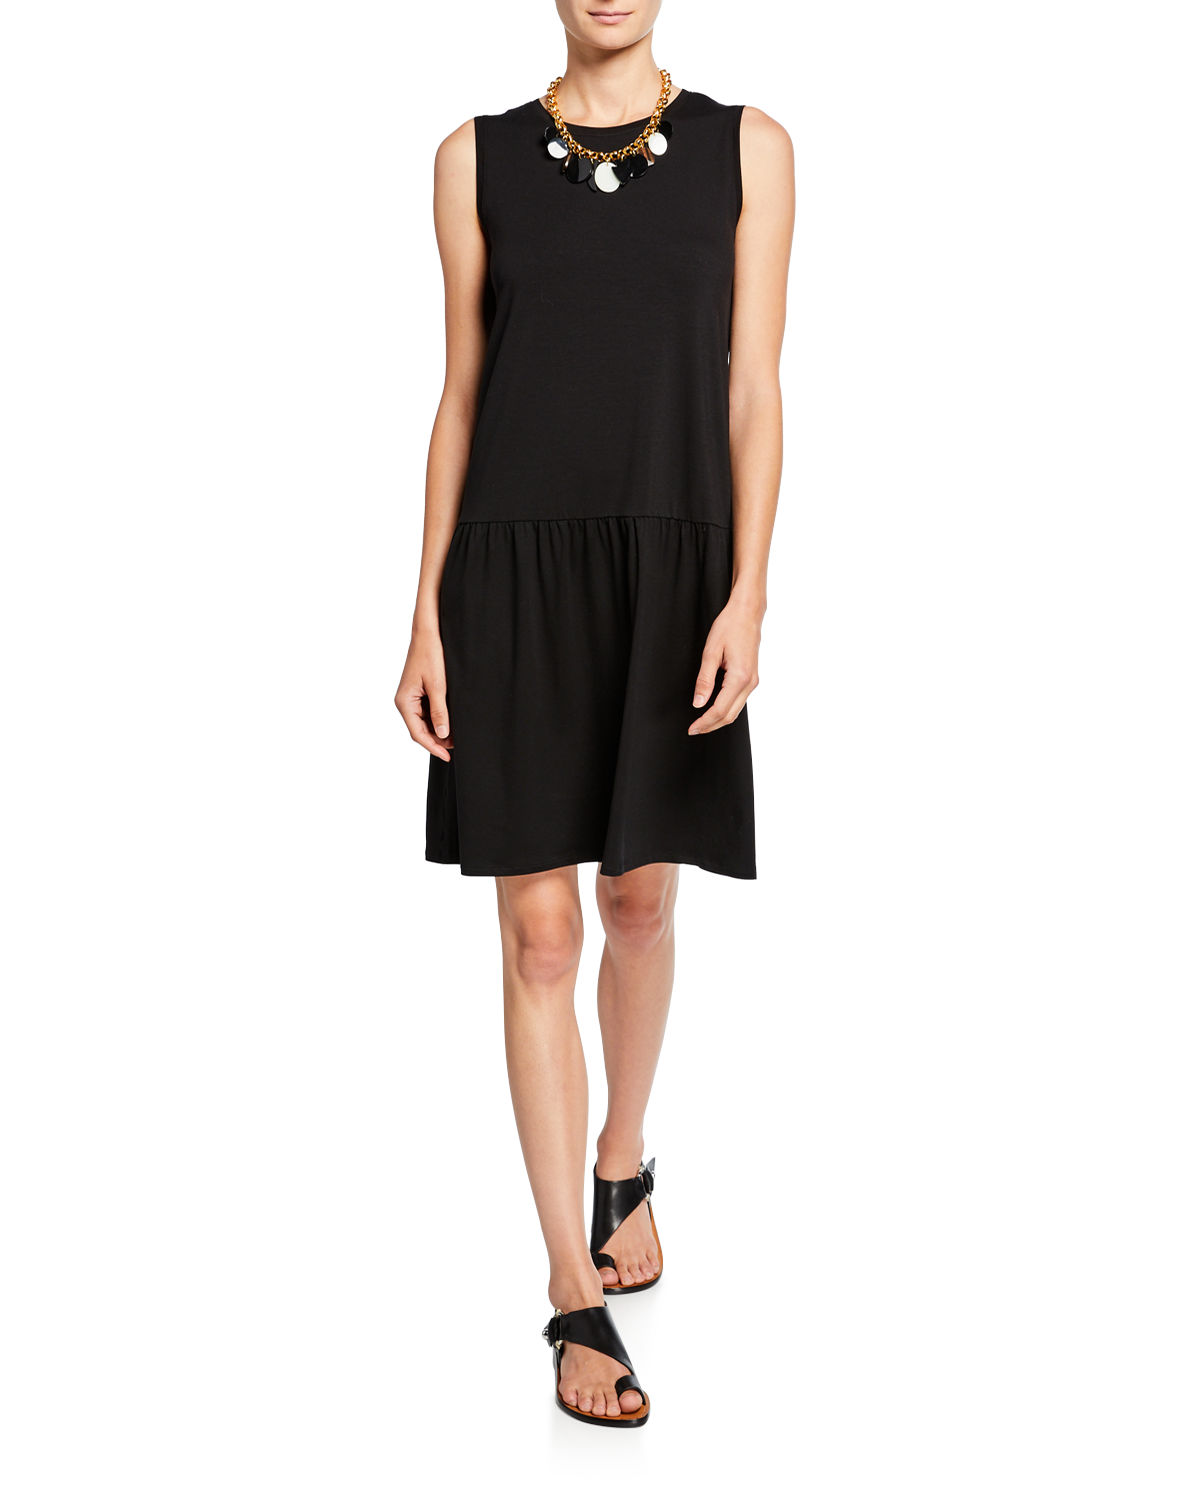 Eileen Fisher Dresses DROP-WAIST SLEEVELESS JERSEY DRESS